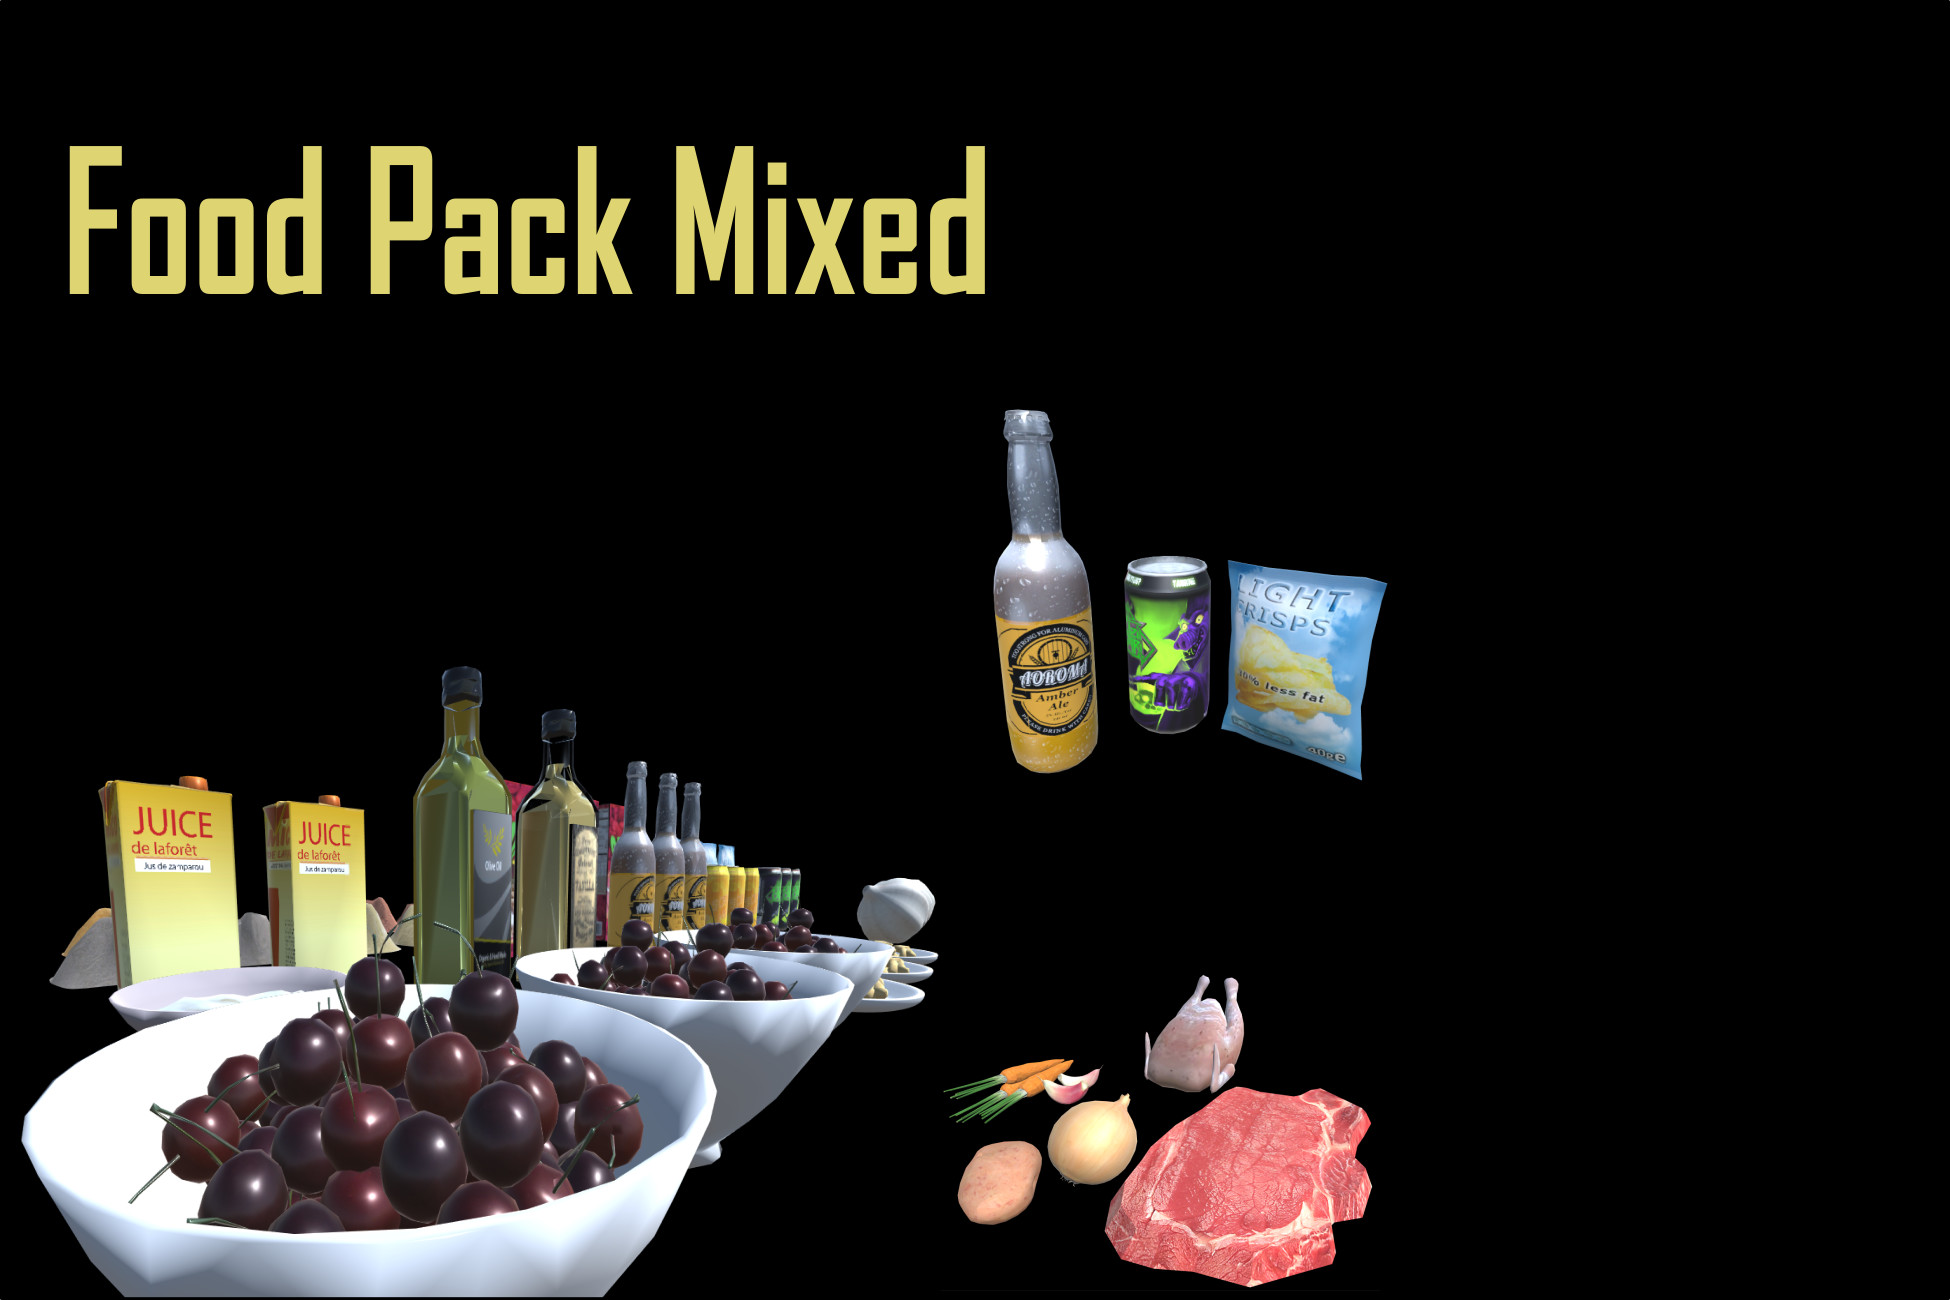 Food Pack Mixed